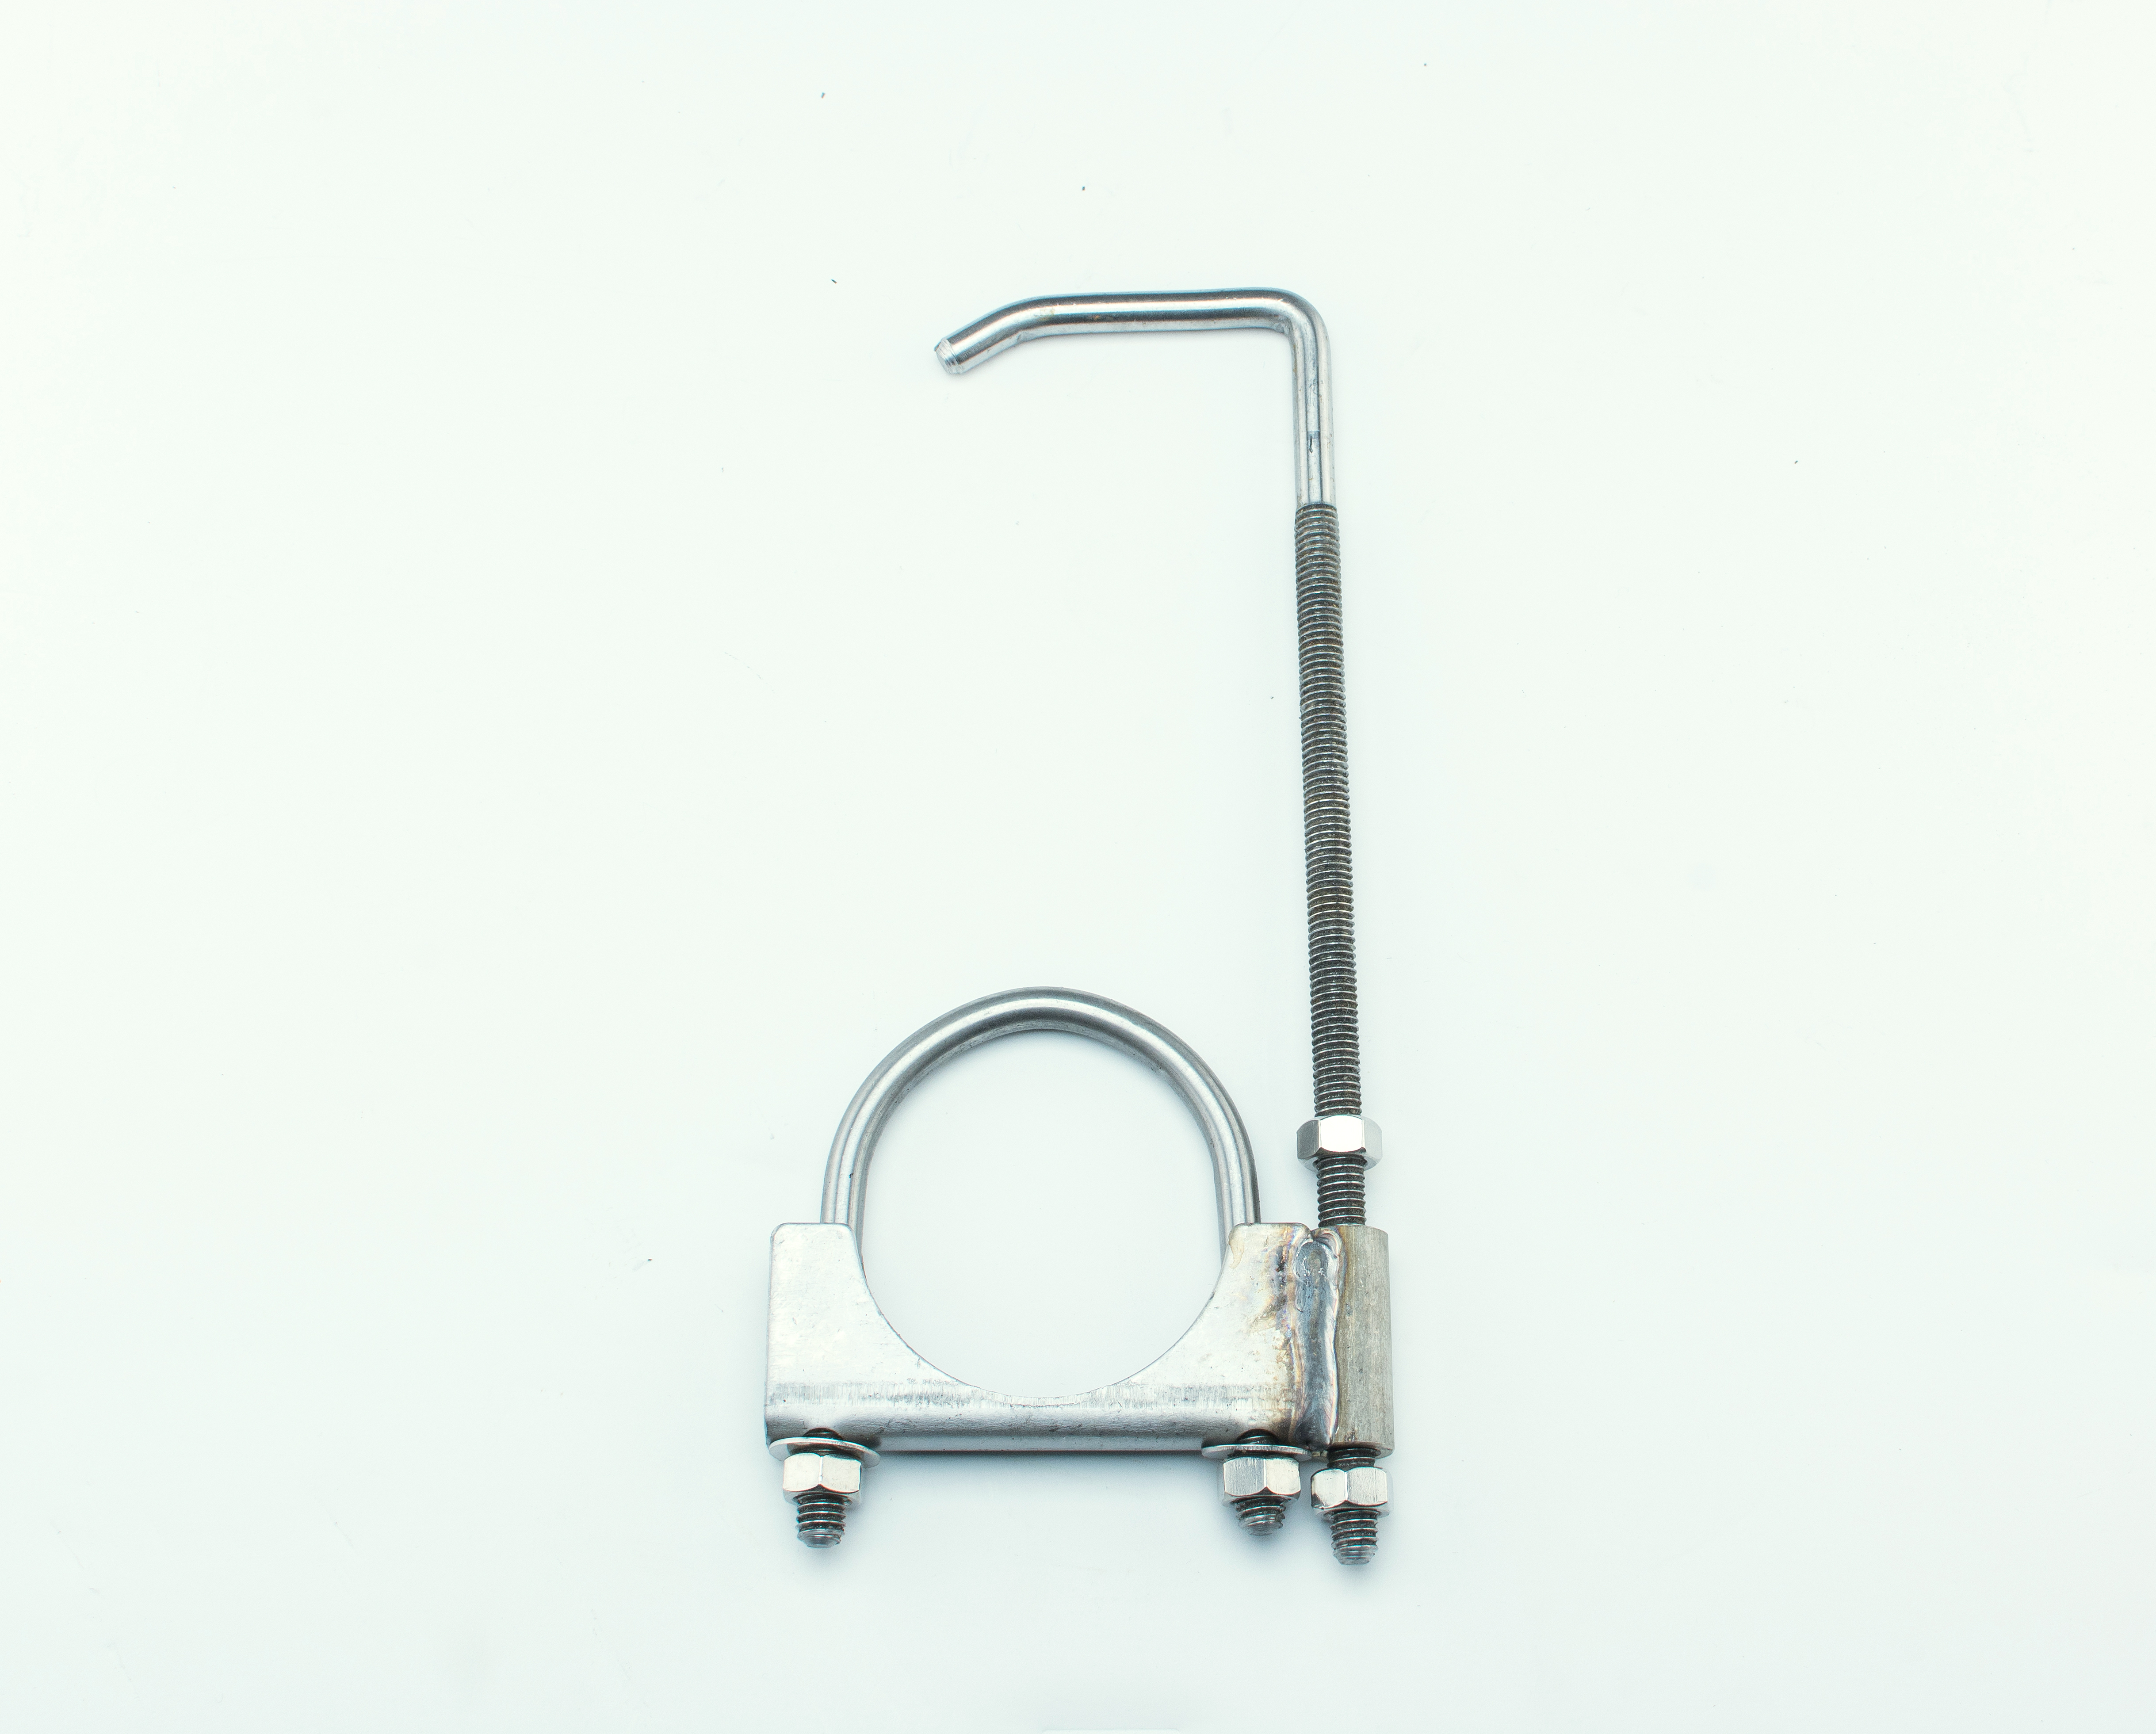 Pypes Performance Exhaust Hvh11s Exhaust Hangers